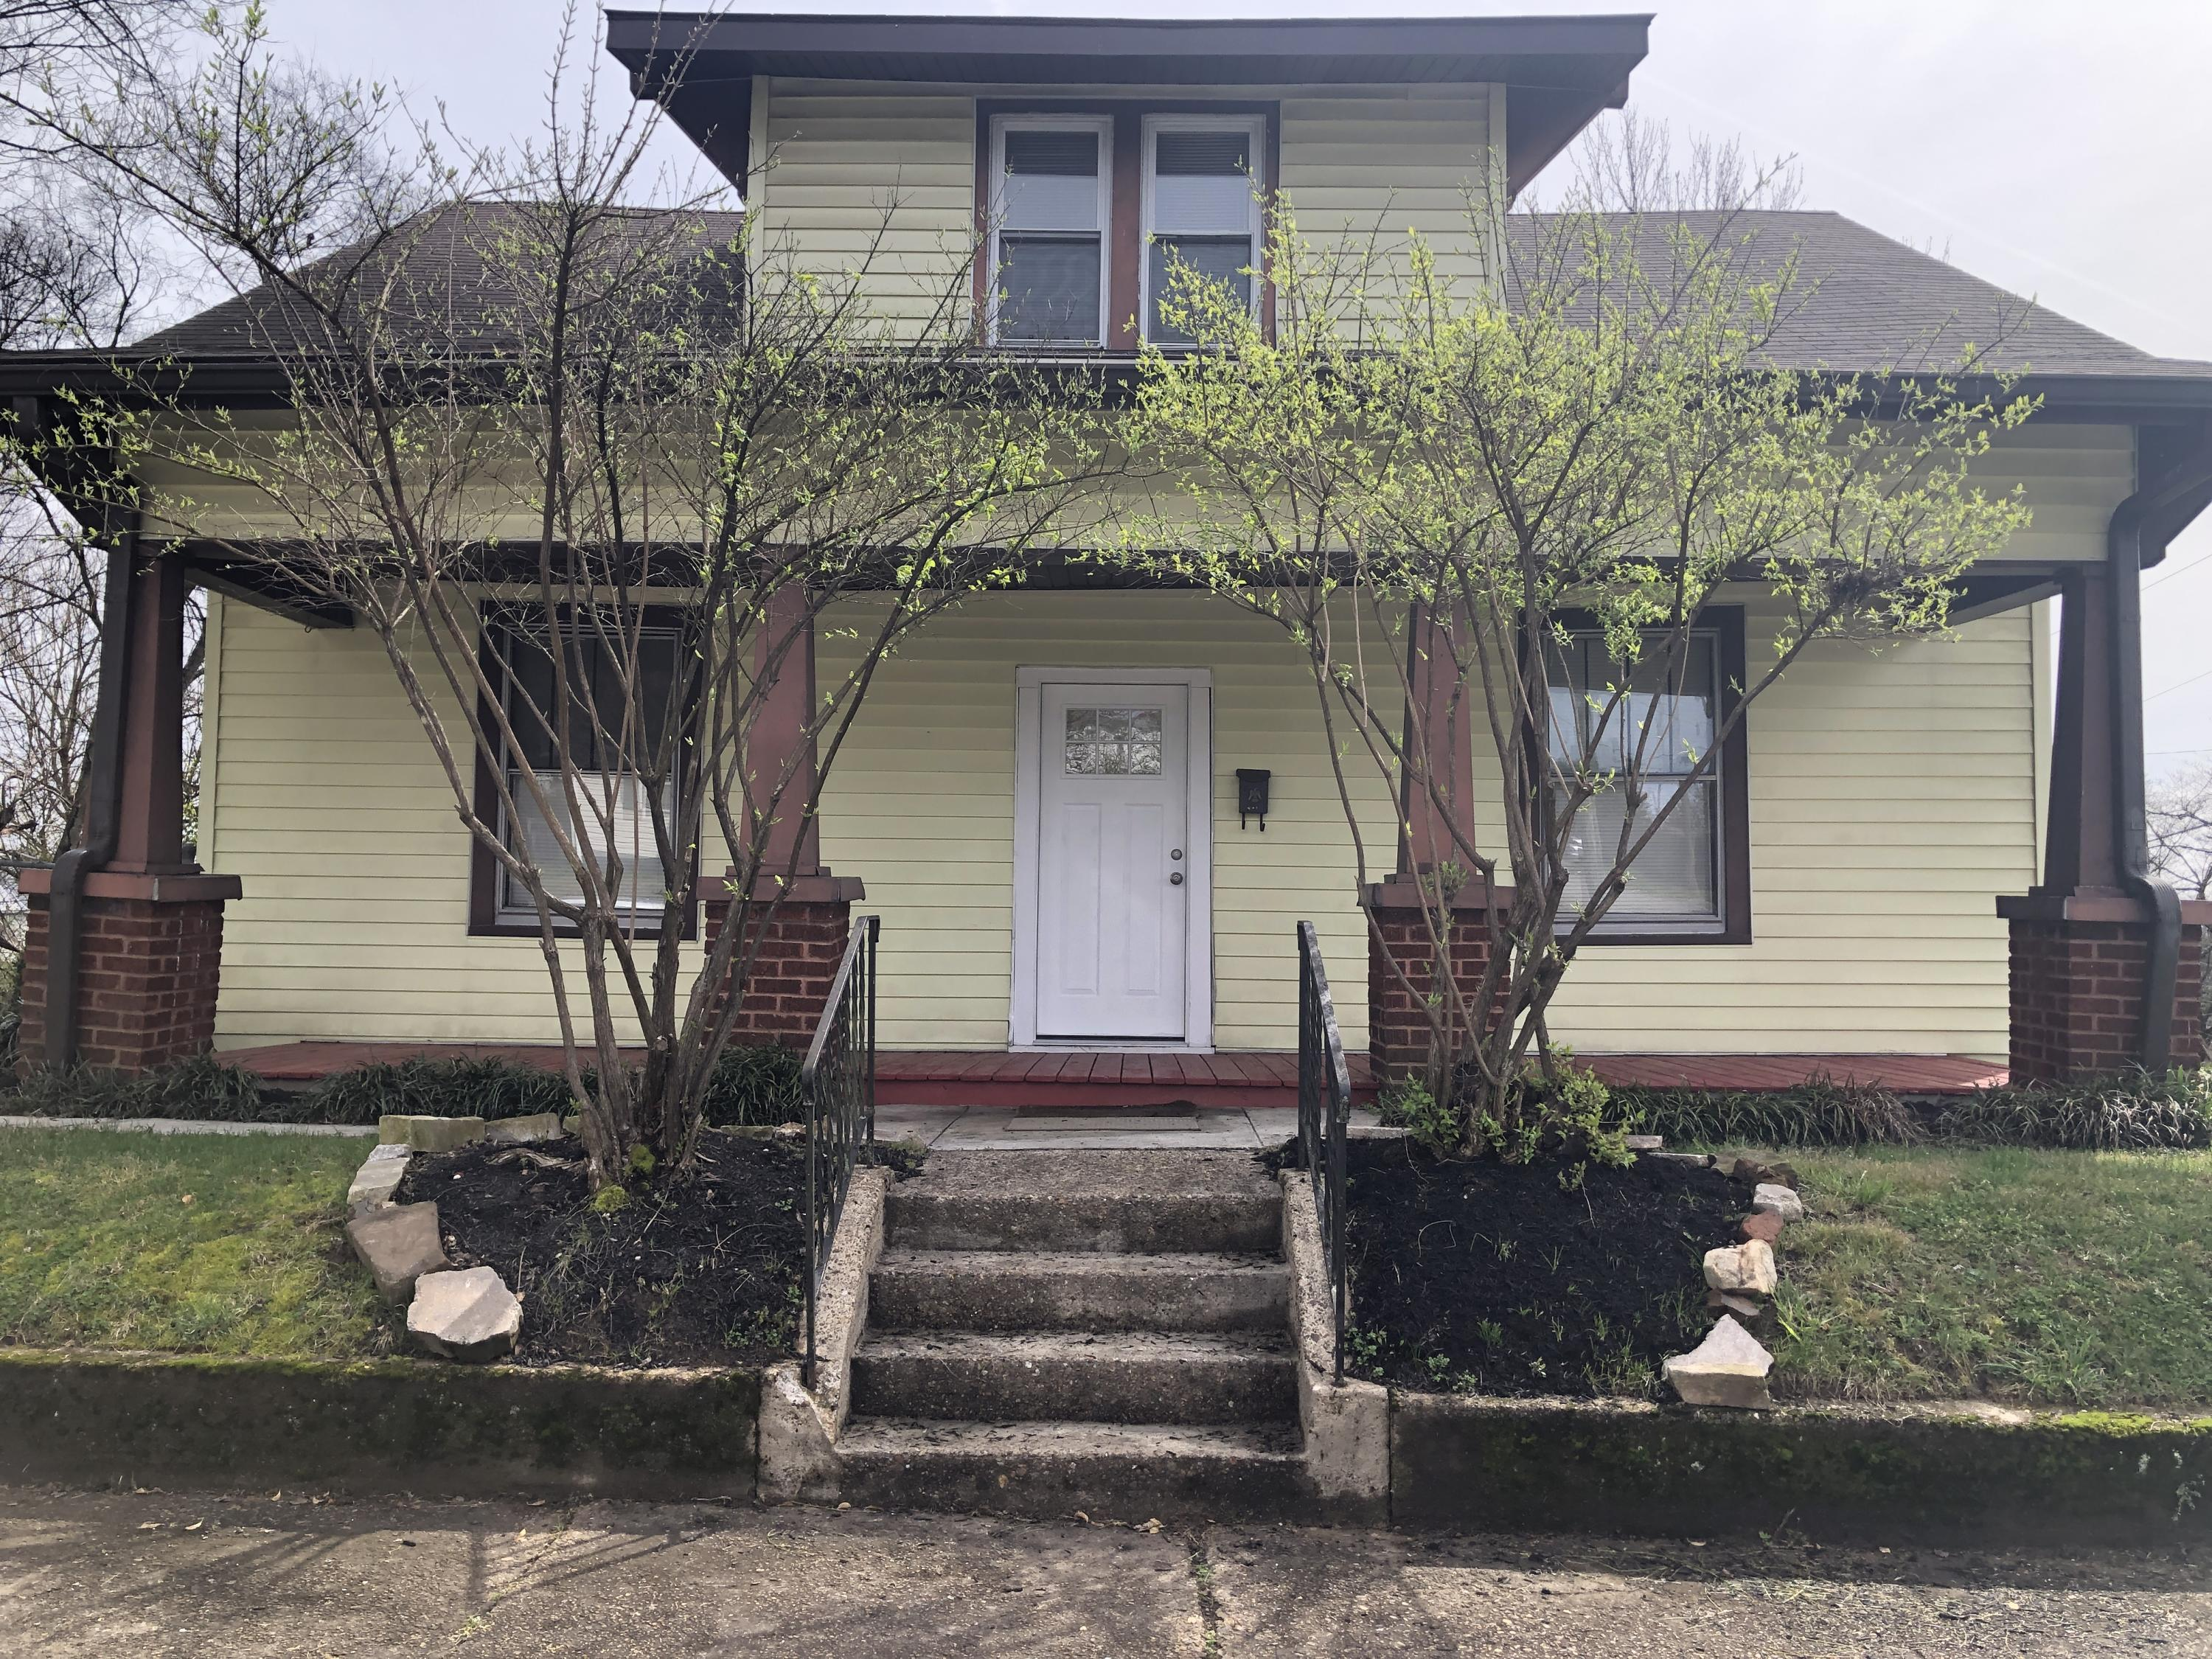 1600 Lawson Ave, Knoxville, Tennessee 37917, 4 Bedrooms Bedrooms, ,2 BathroomsBathrooms,Single Family,For Sale,Lawson,1074186